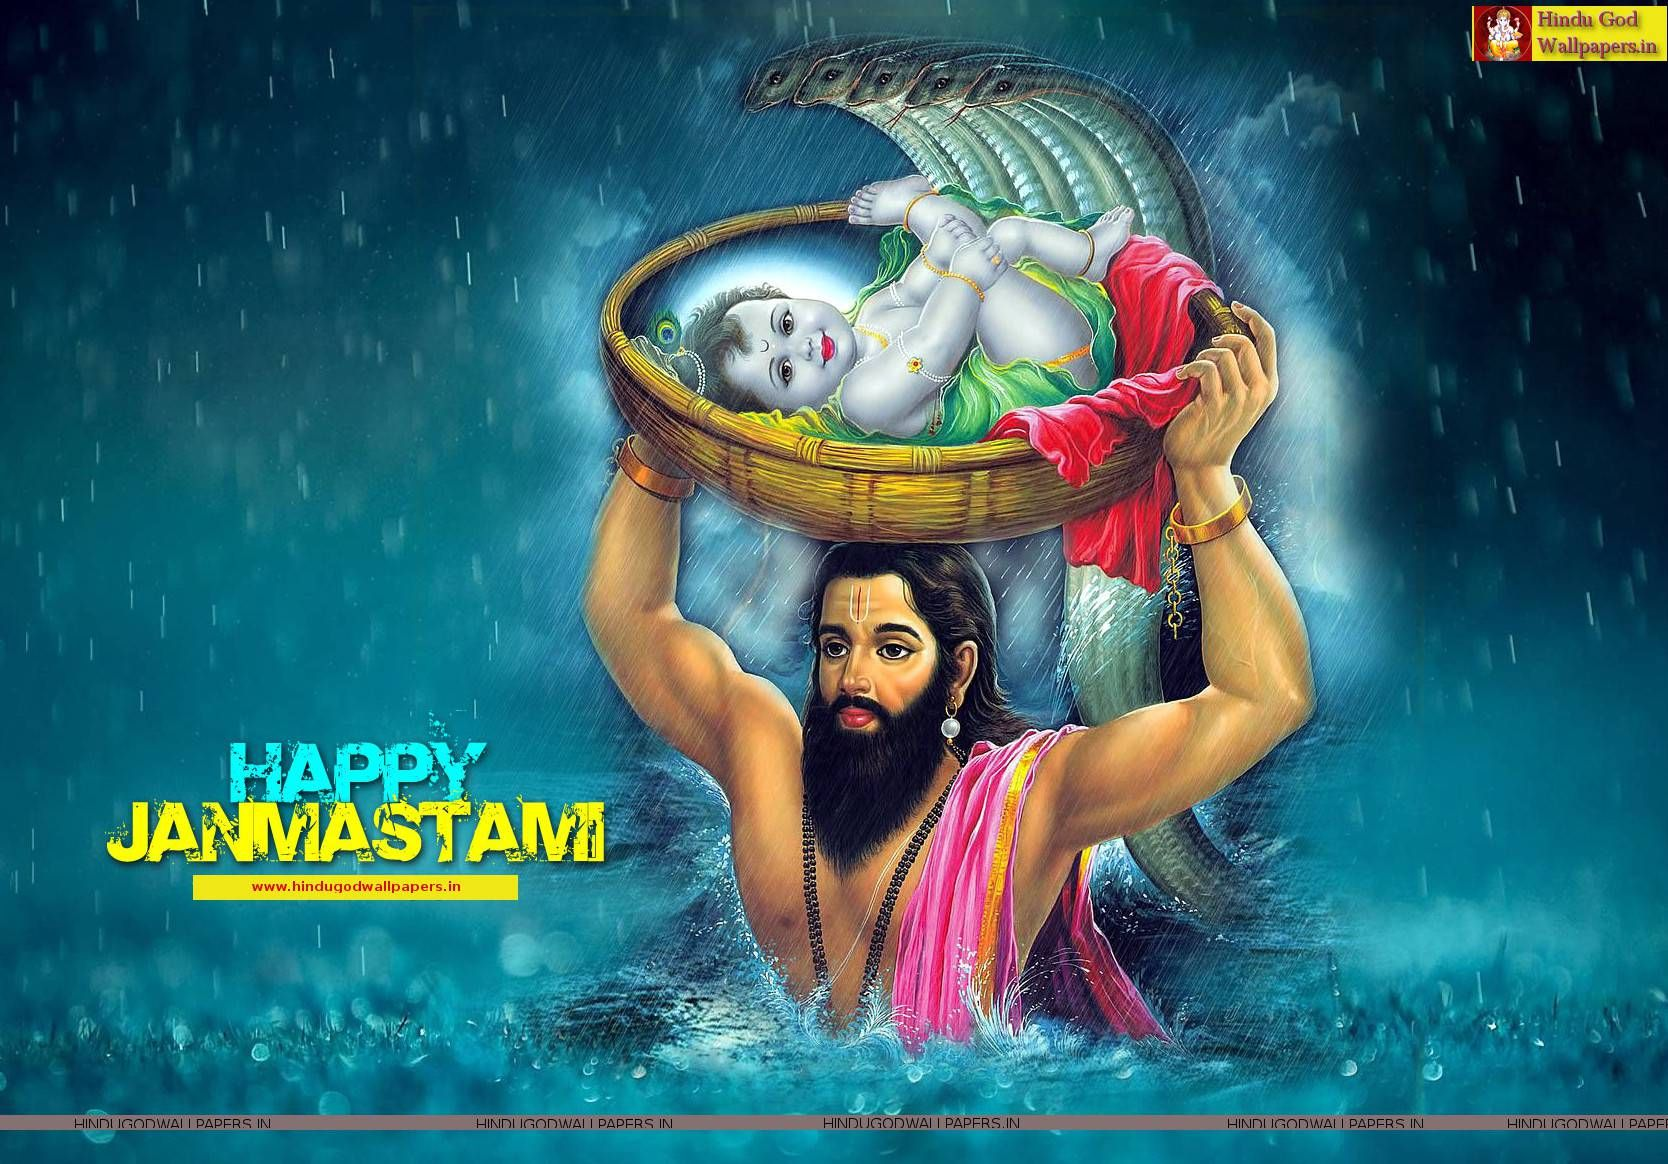 Krishna Janam Wallpaper Free Download Krishnashtami God Images Hindu God Wallpaper Happy Janmashtami Image Janmashtami Images Janmashtami Wishes